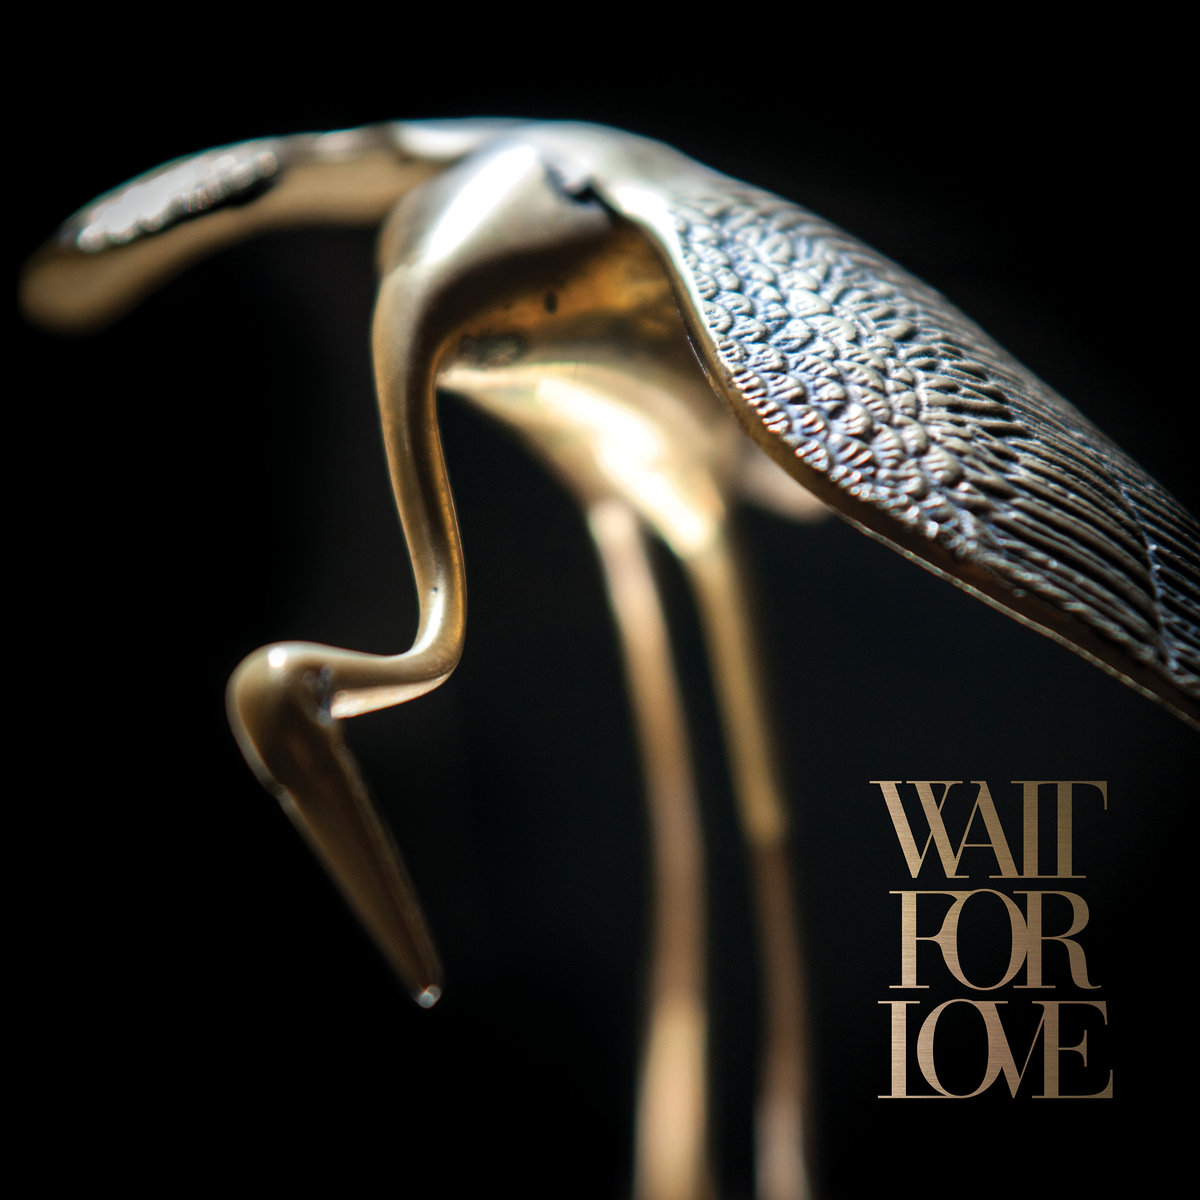 1. Pianos Become The Teeth - Wait For Love - Favorite Song: Love On Repeat